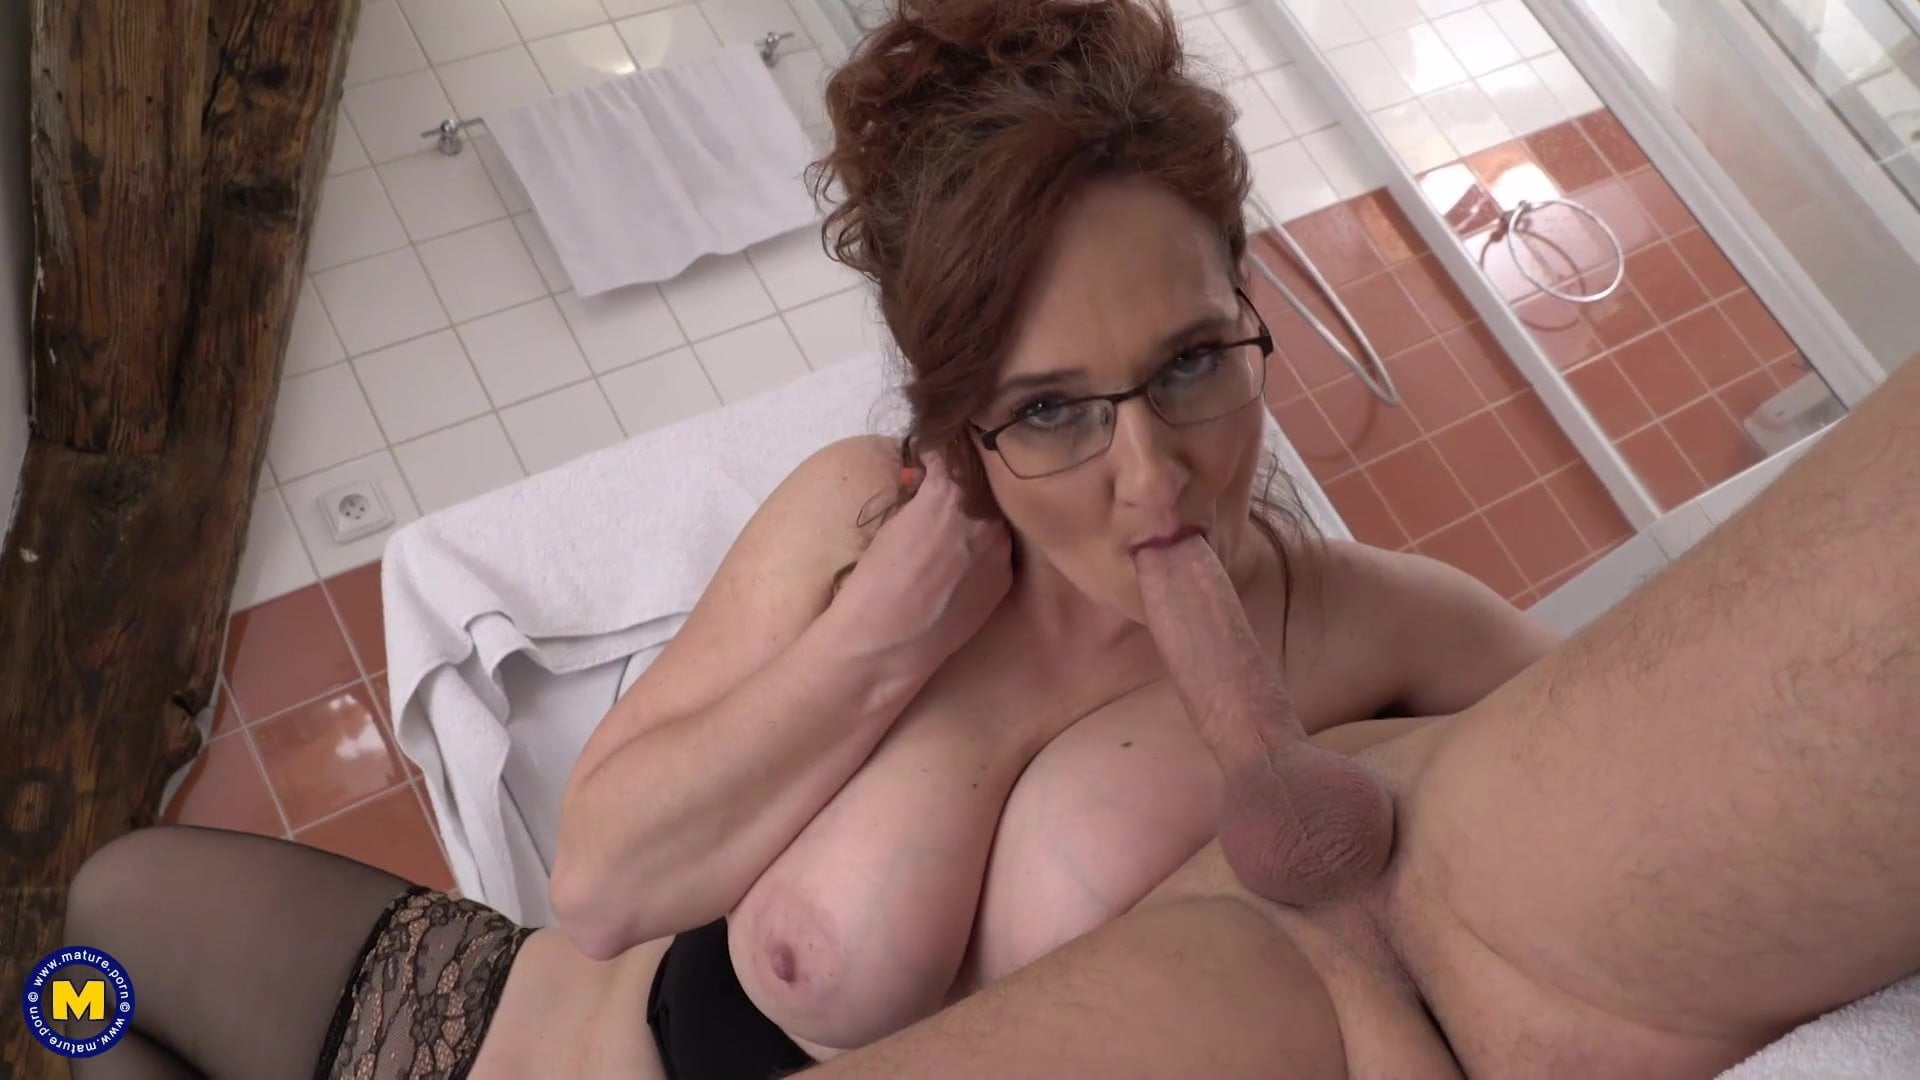 pissing wet pussy